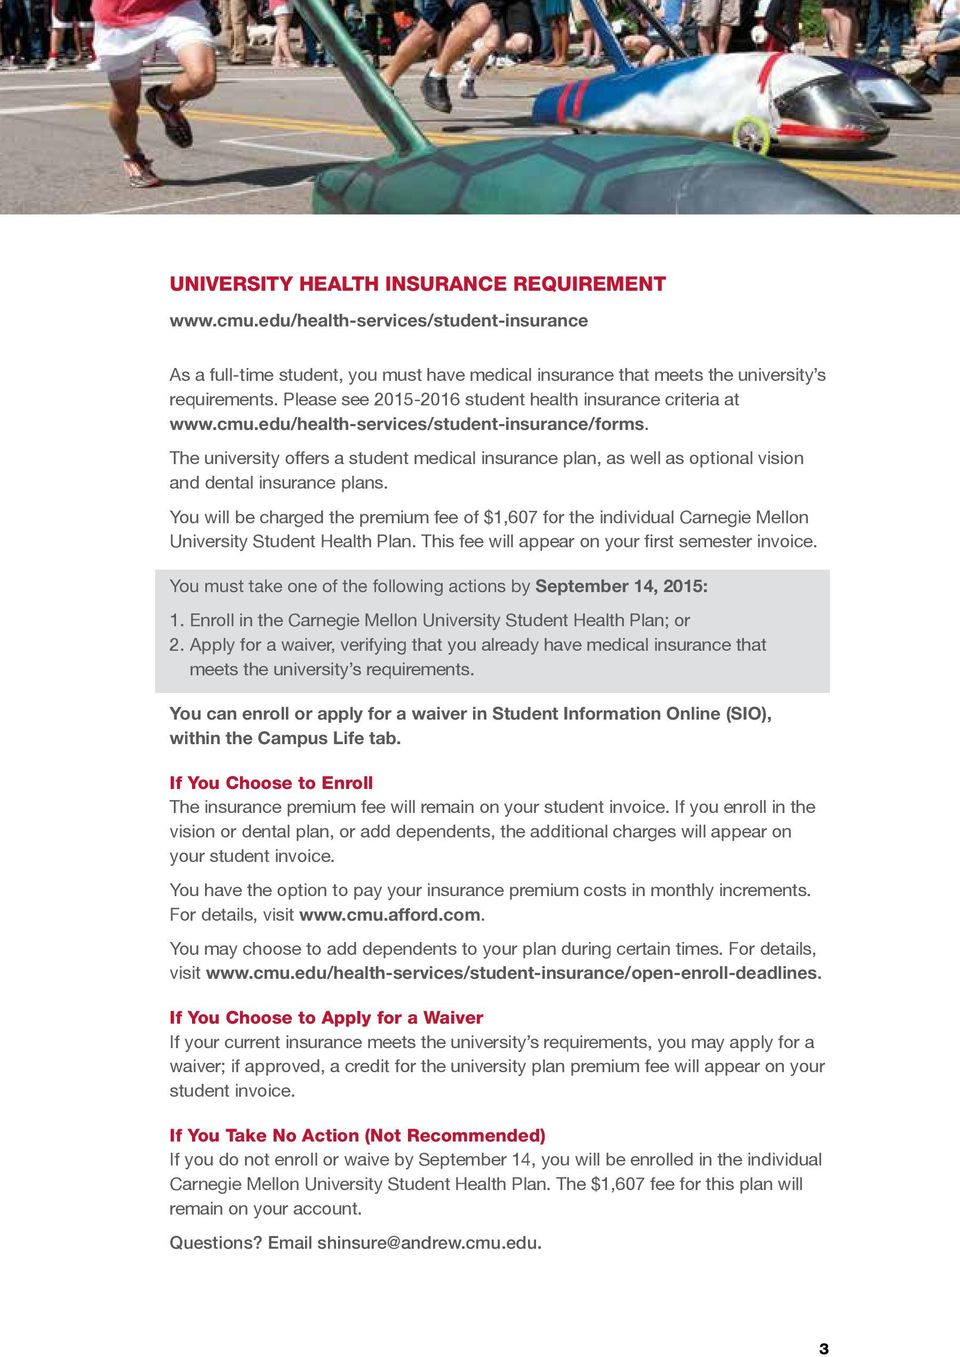 The university offers a student medical insurance plan, as well as optional vision and dental insurance plans.